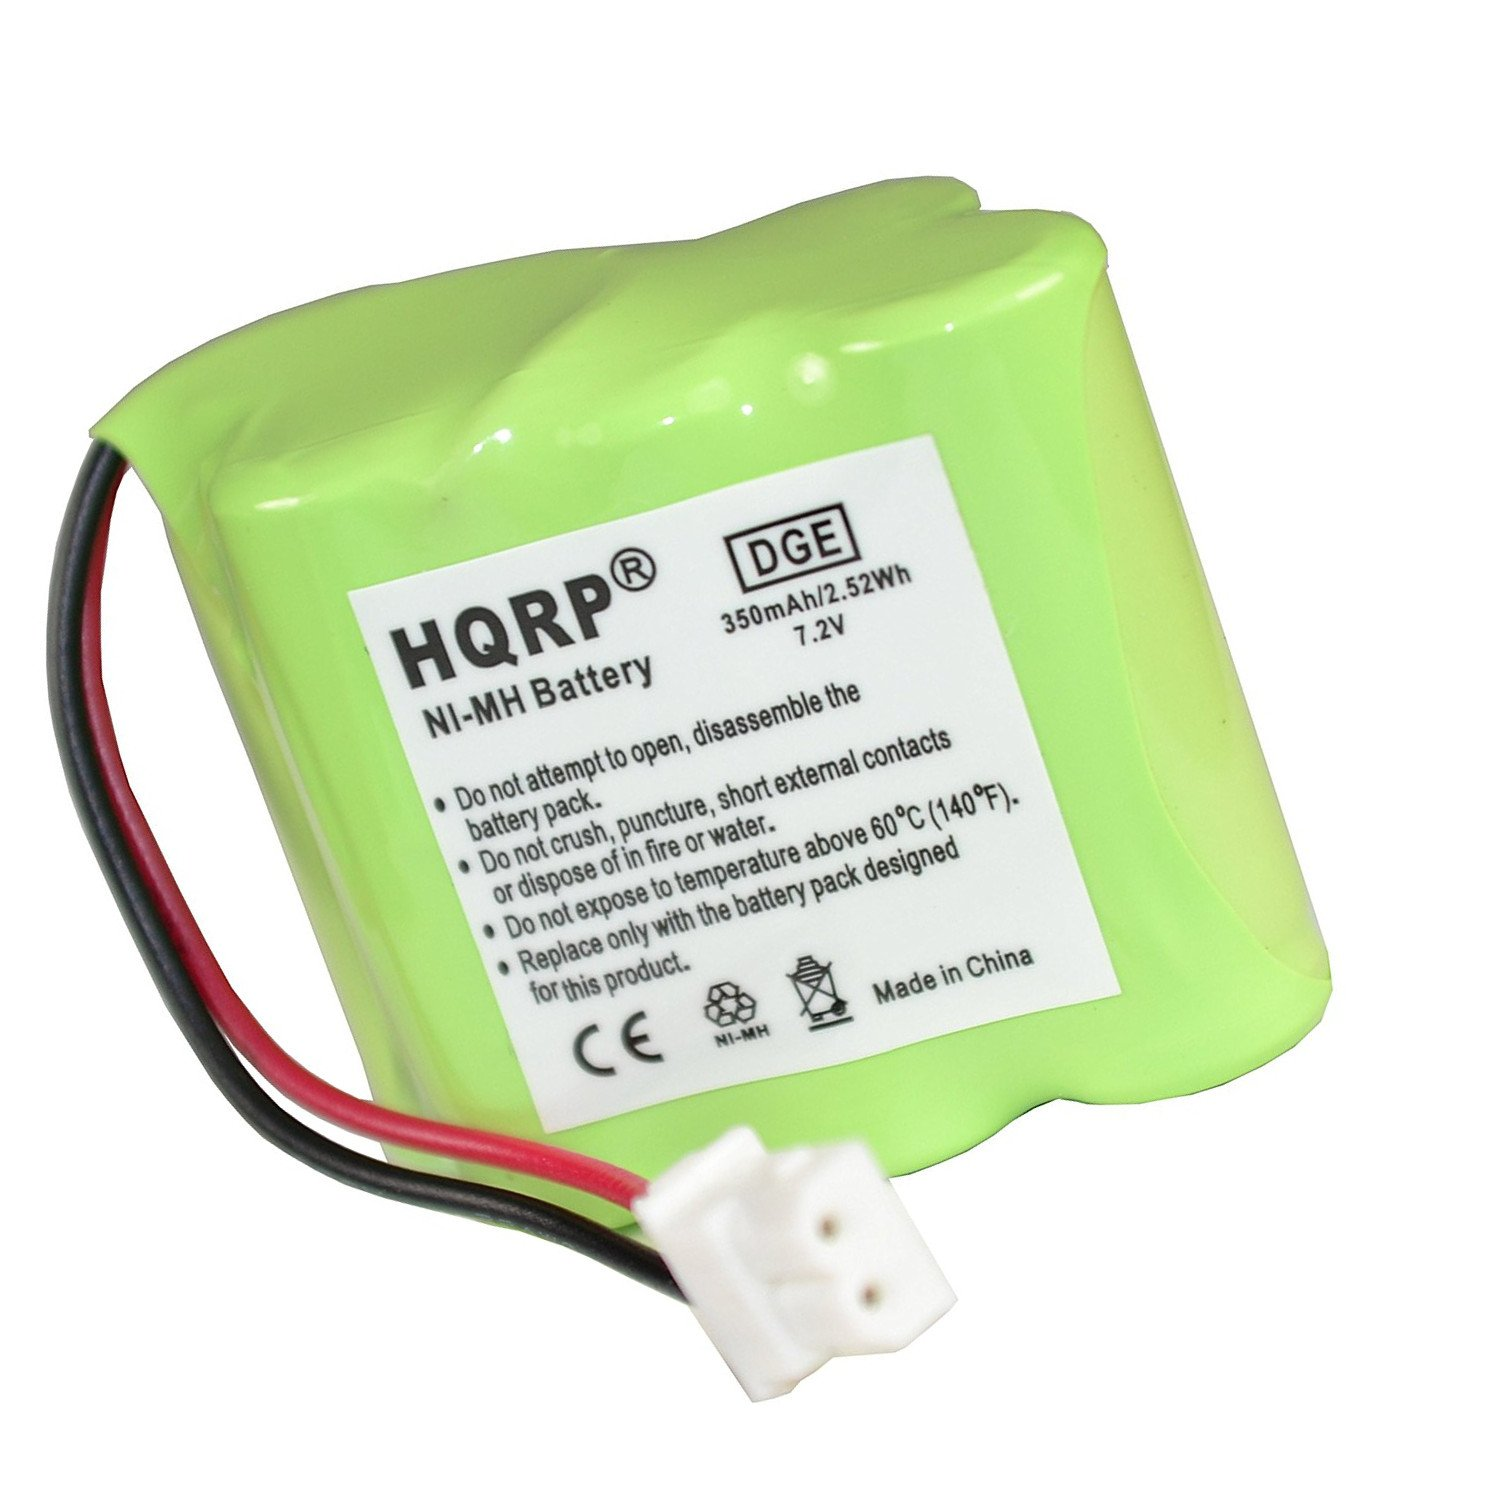 HQRP Transmitter Battery for Dt-Systems LH040-3A29C60RML Super Trainer EZT plus 5000, EZT plus 5002, EZT Plus 1000 Dog Training Collar + Coaster by HQRP